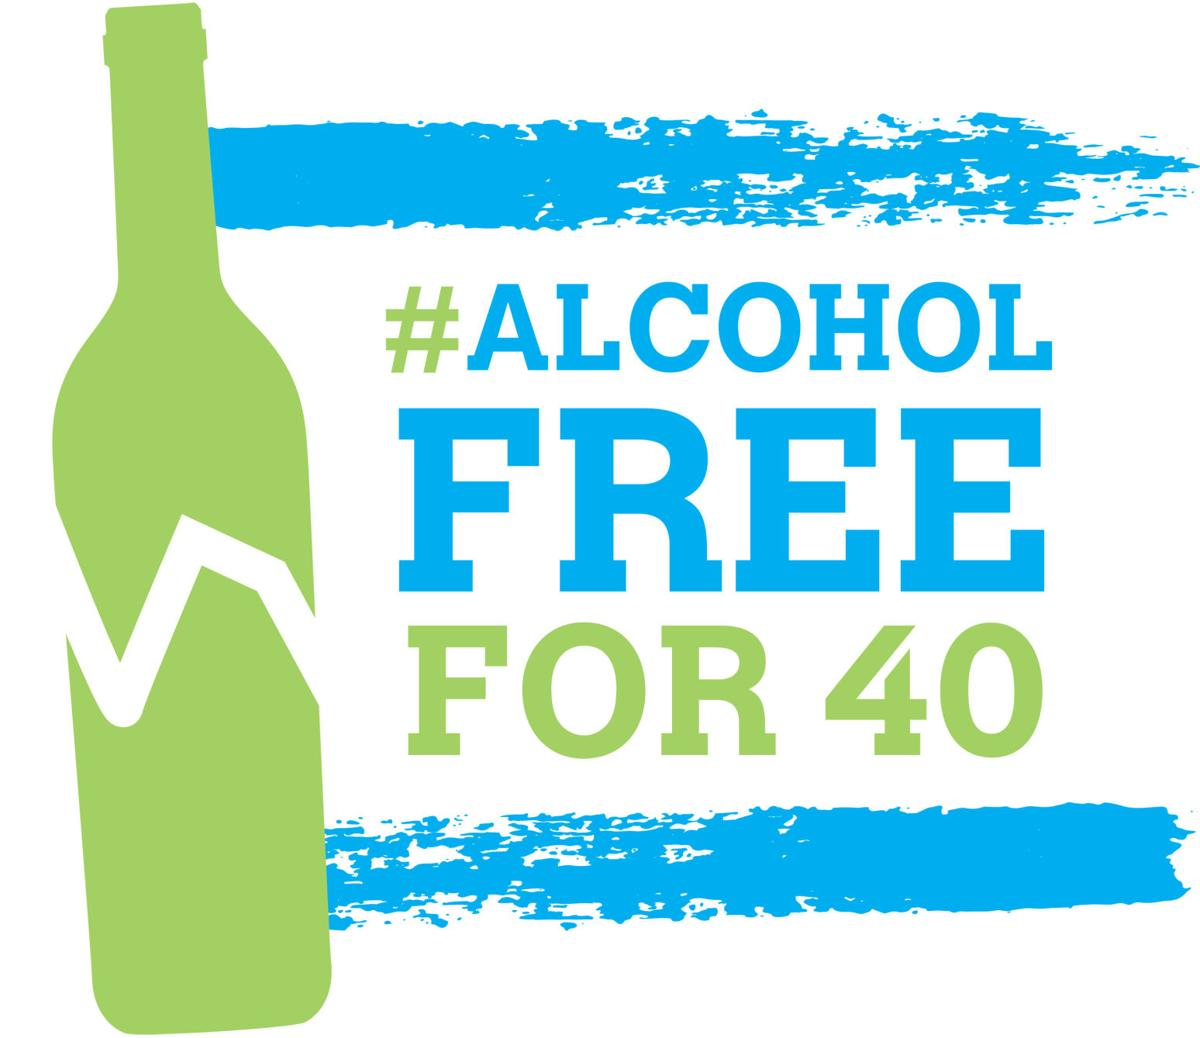 Sleeping tips, mocktail recipes for the Alcohol Free for 40 challenge check-in